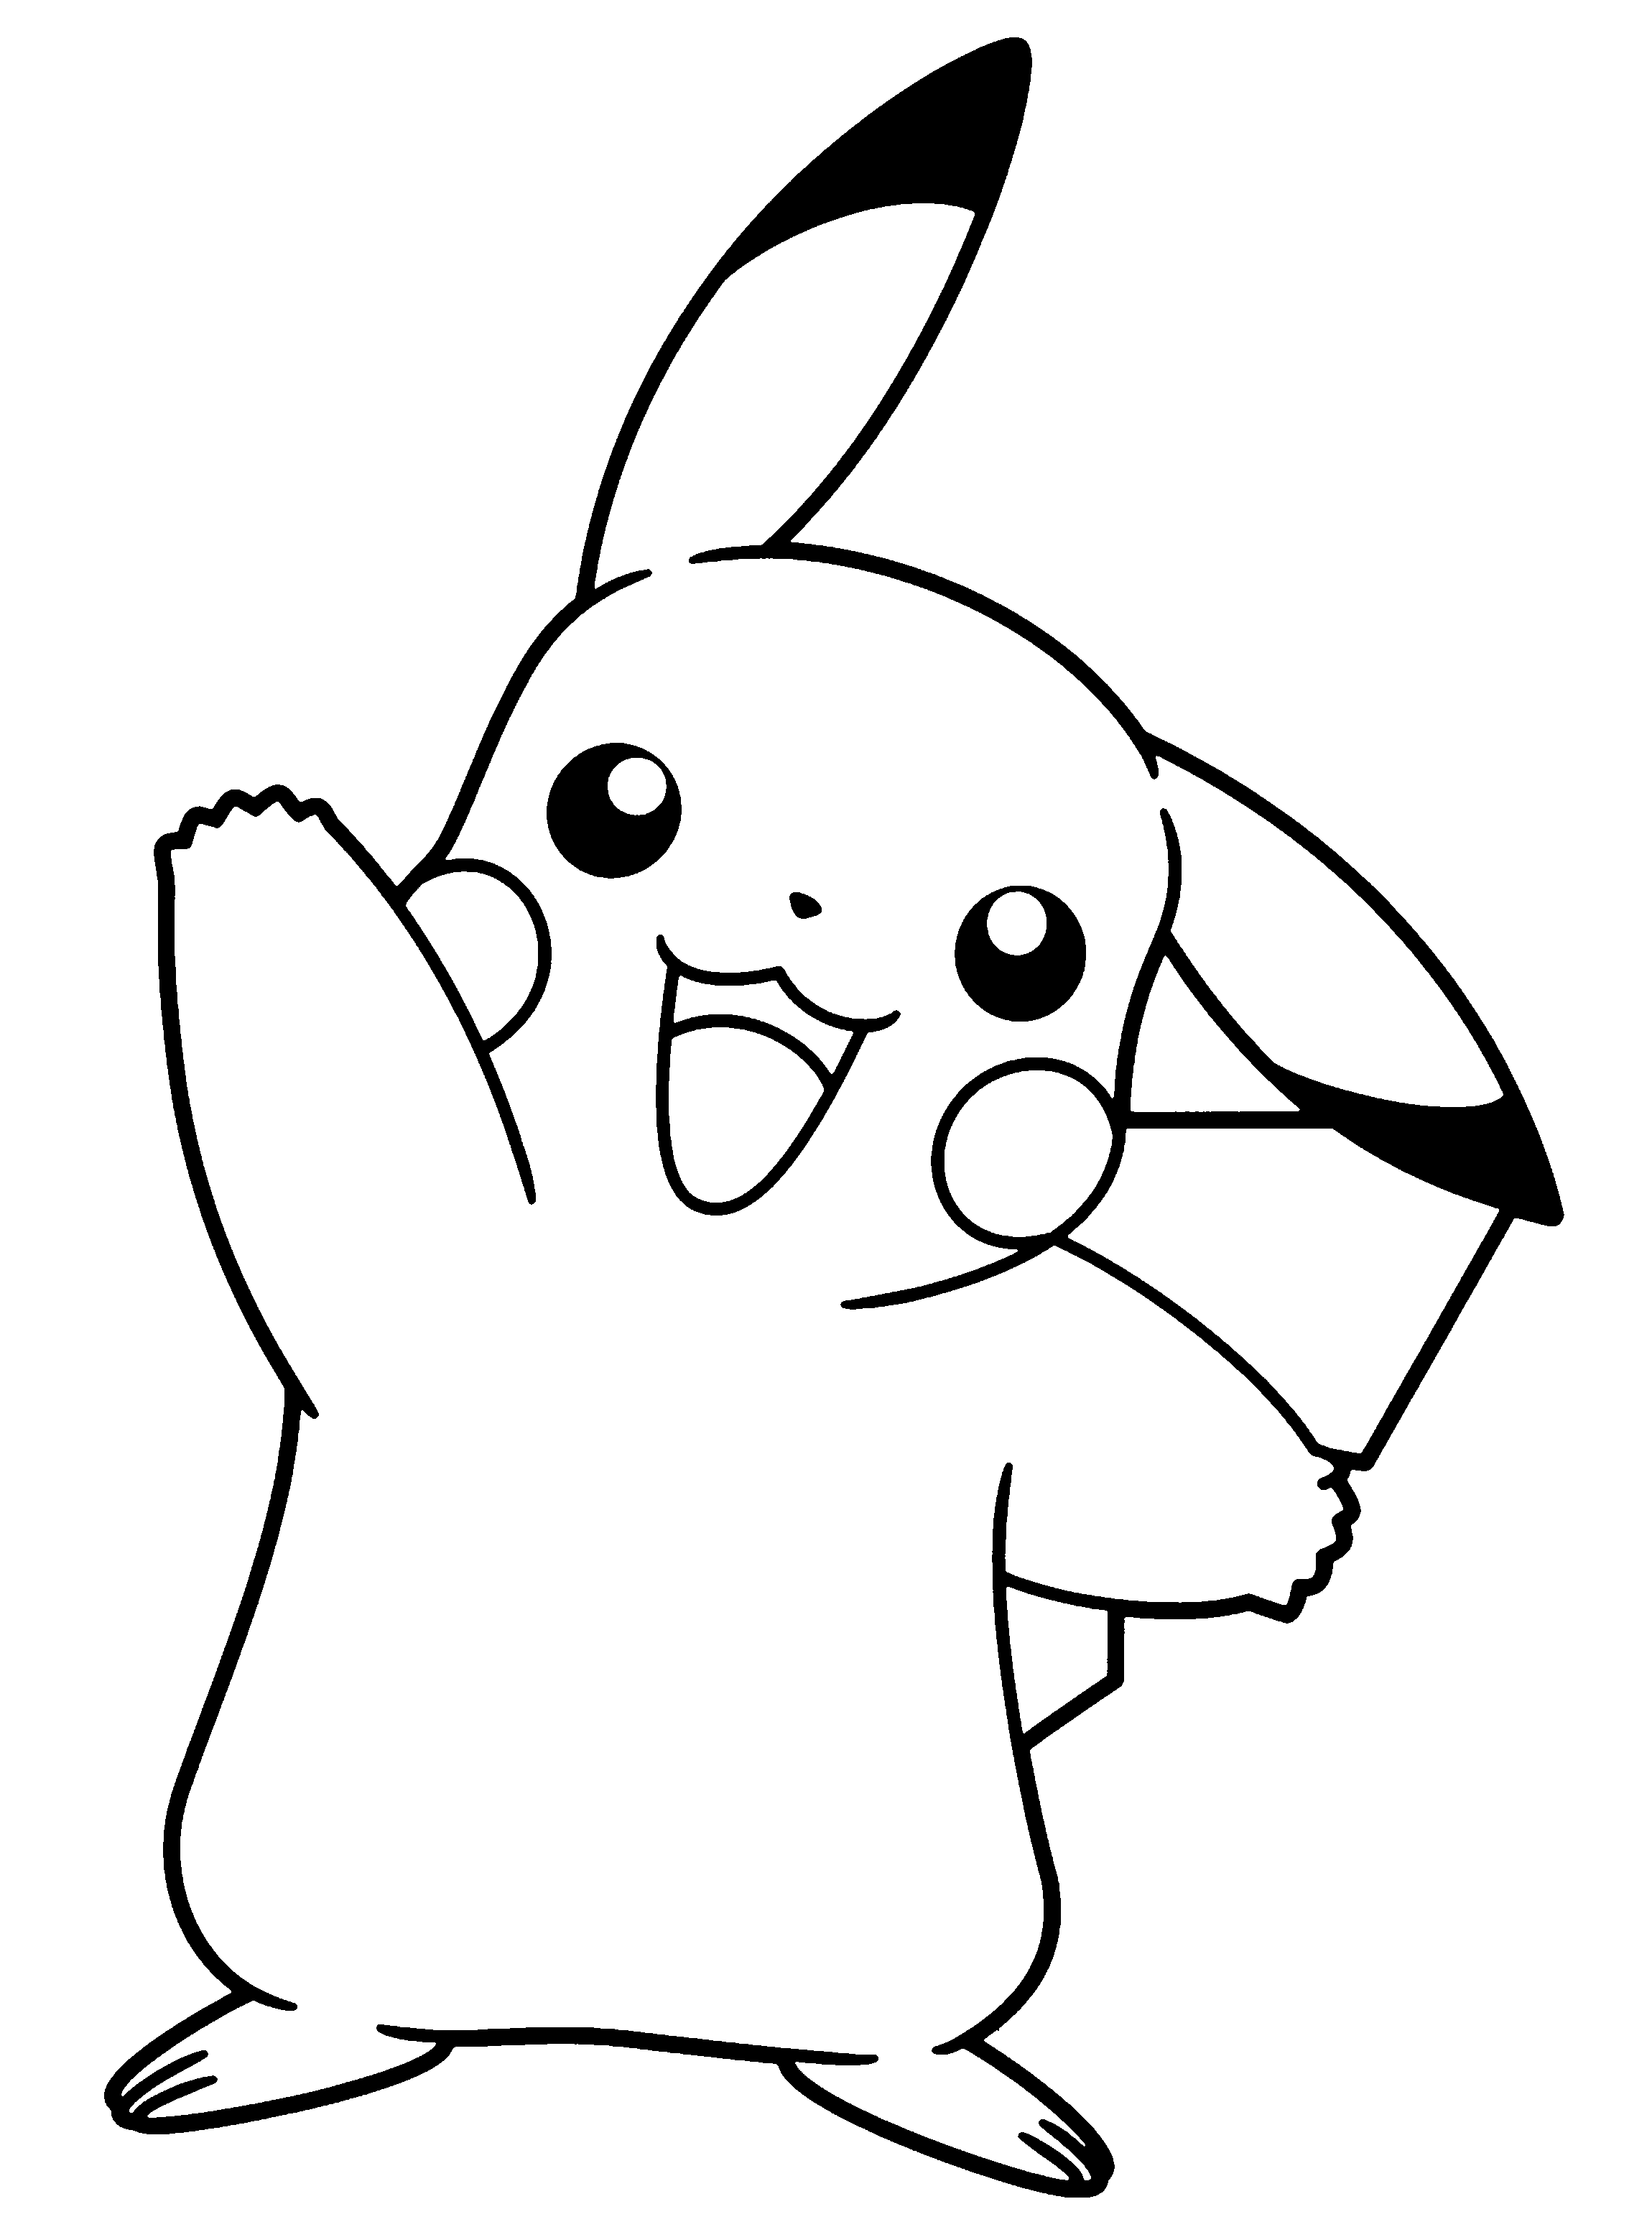 Pokemon Black And White Clip Art Sketch Coloring Page.